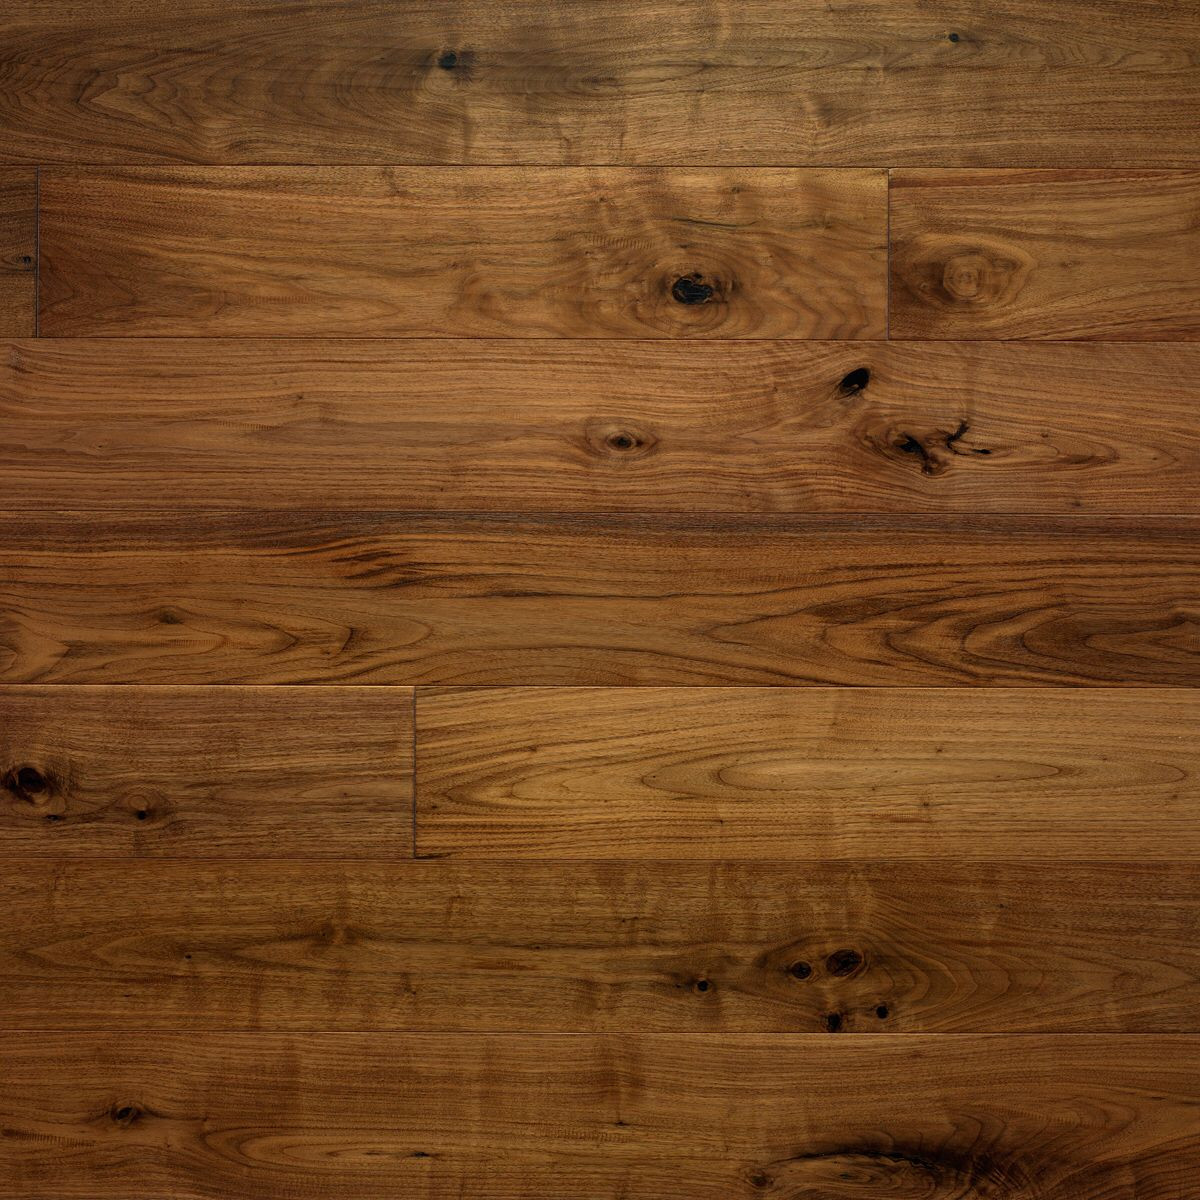 Hardwood Flooring Wide or Narrow Plank Of Kentwood originals Sculpted Walnut Wide Plank Engineered Hardwood with Regard to Kentwood originals Sculpted Walnut Wide Plank Engineered Hardwood